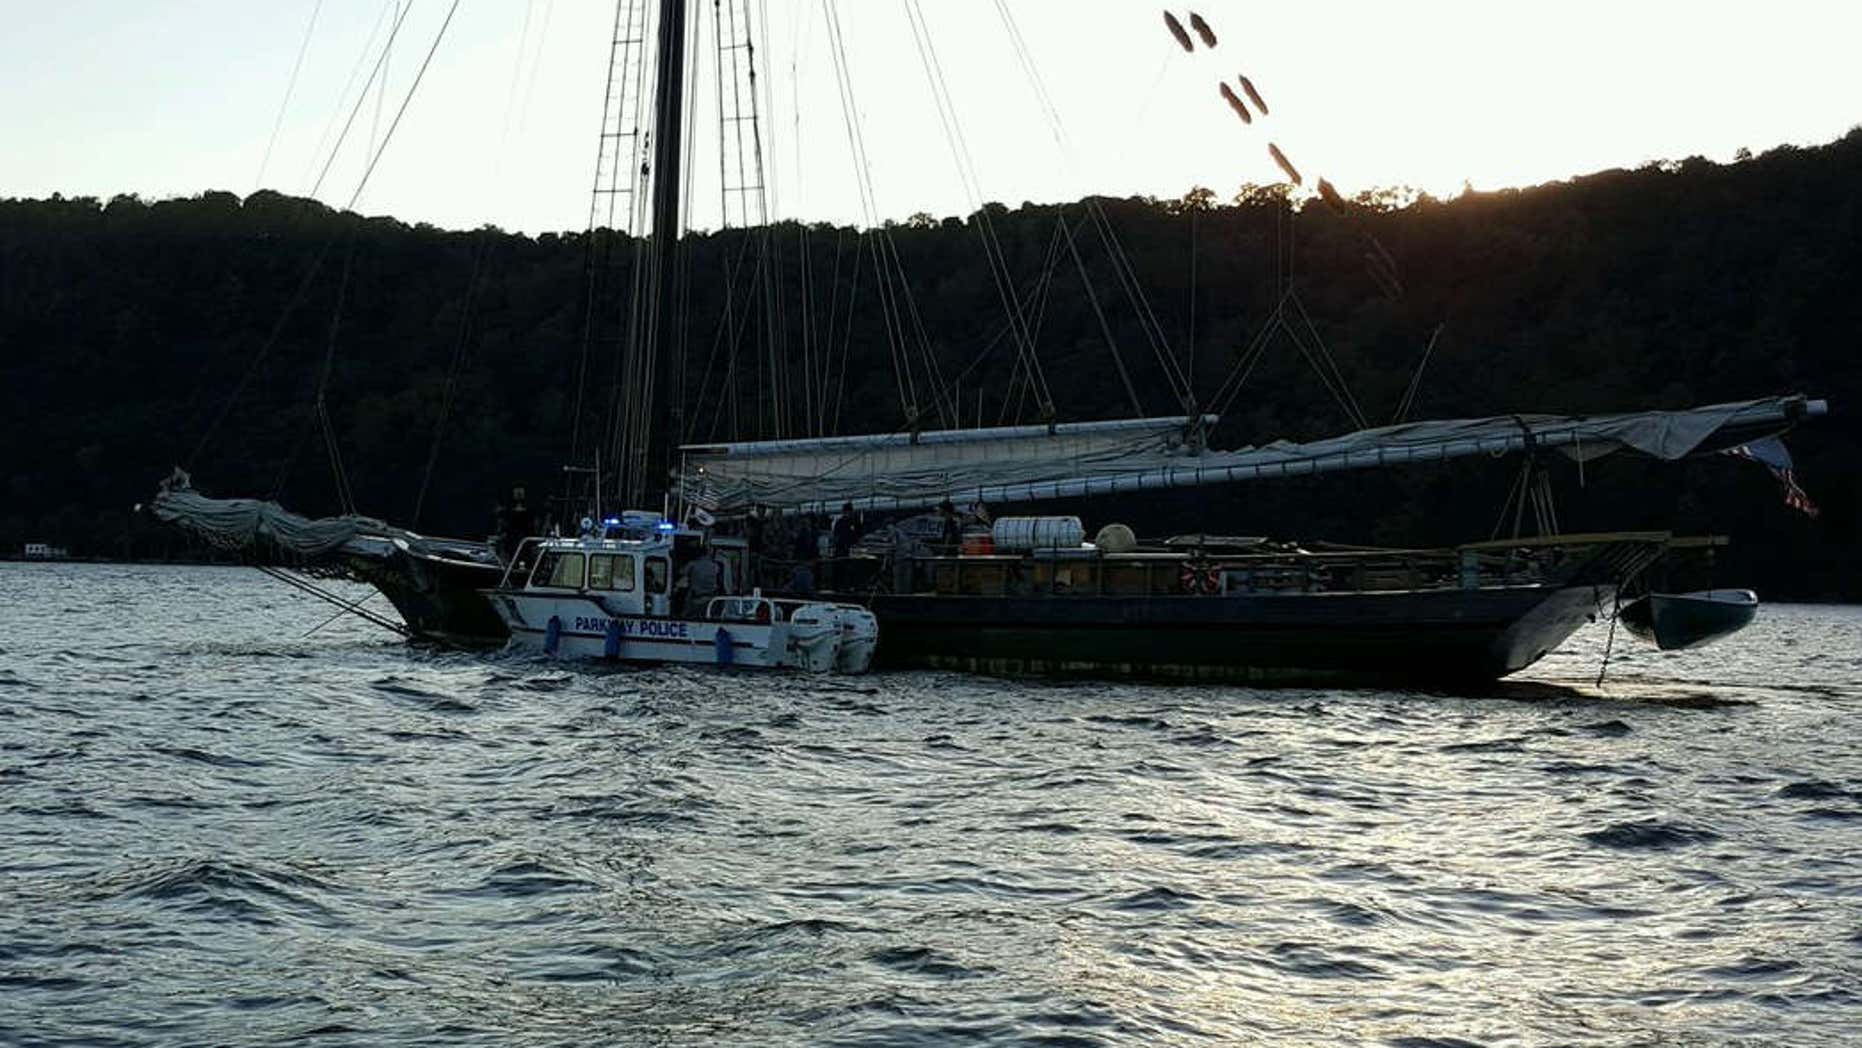 The disabled Clearwater on the Hudson River.